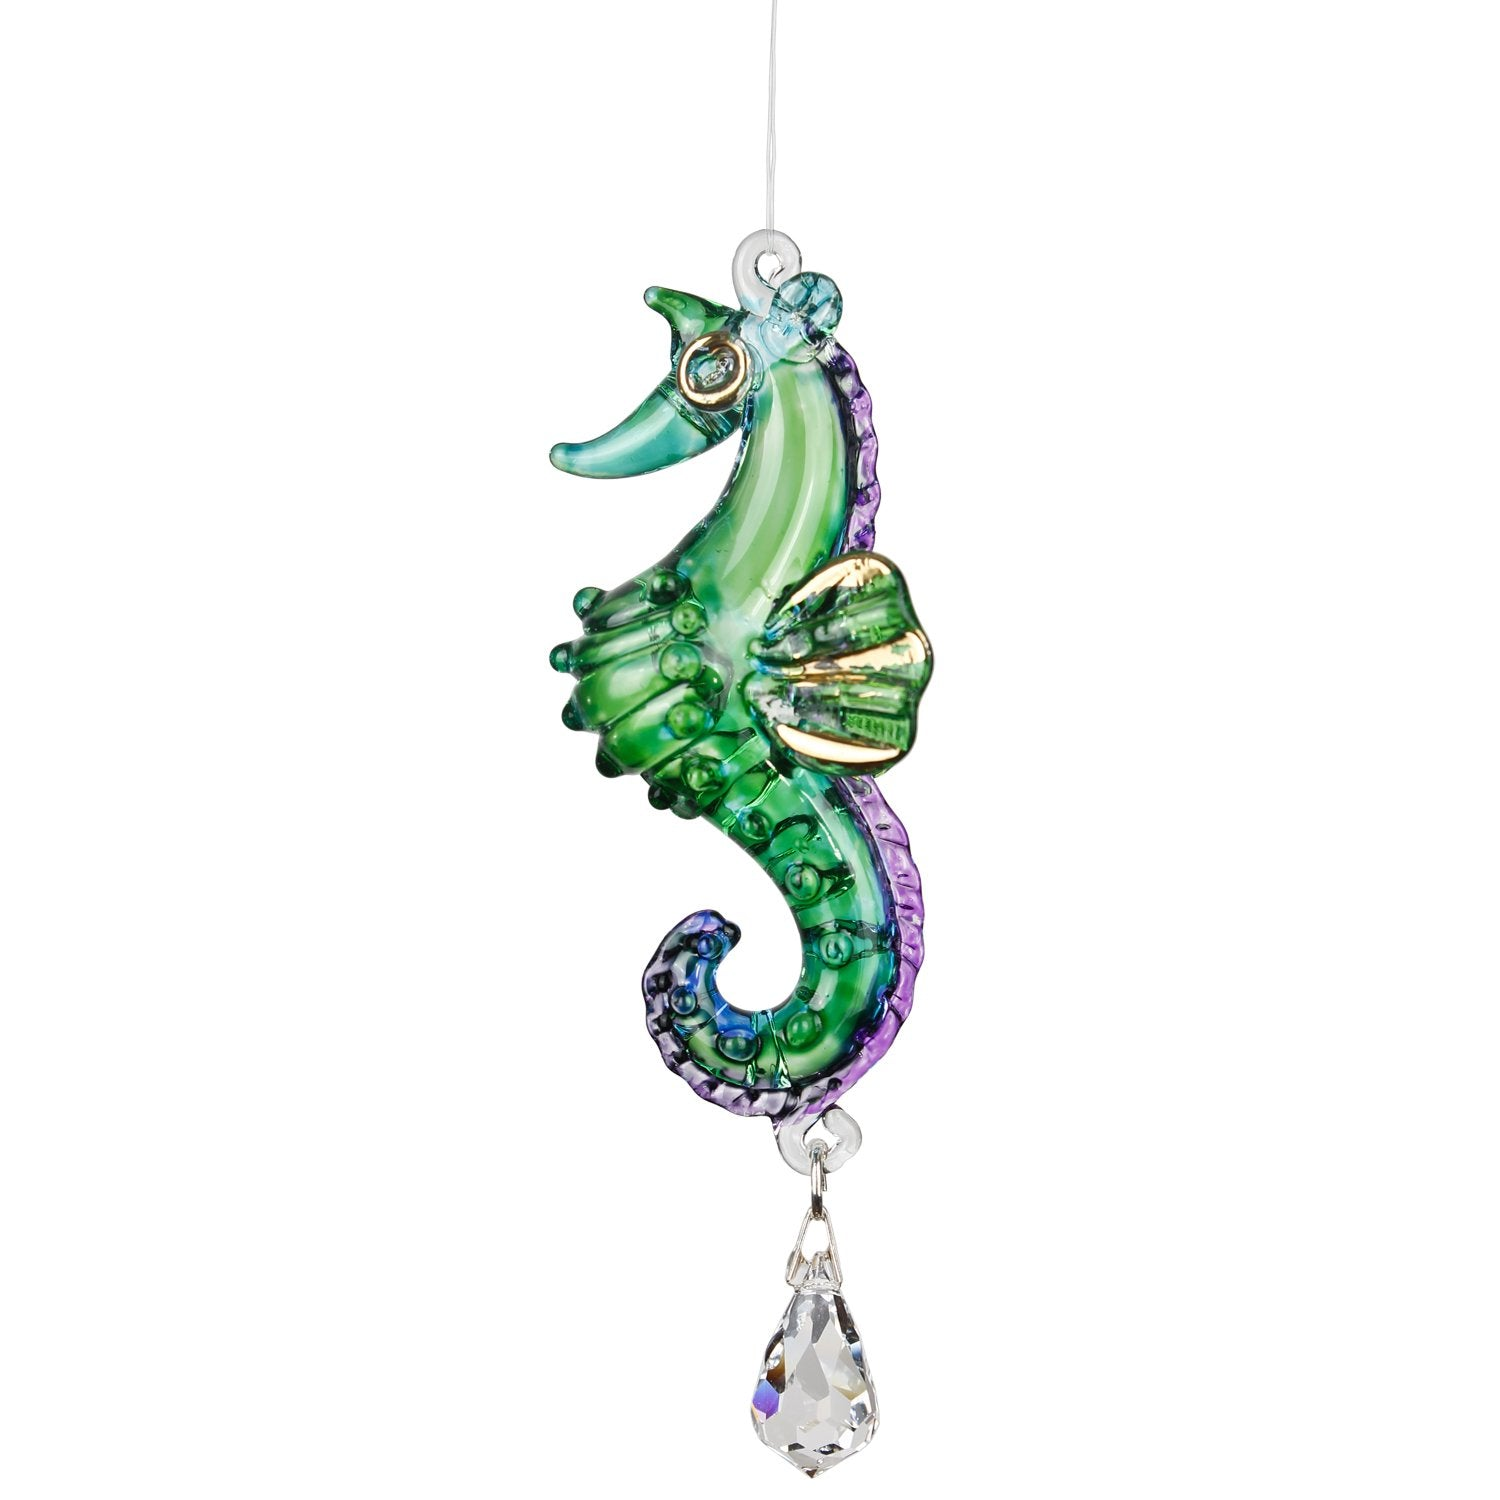 Fantasy Glass Suncatcher - Seahorse, Peacock main image